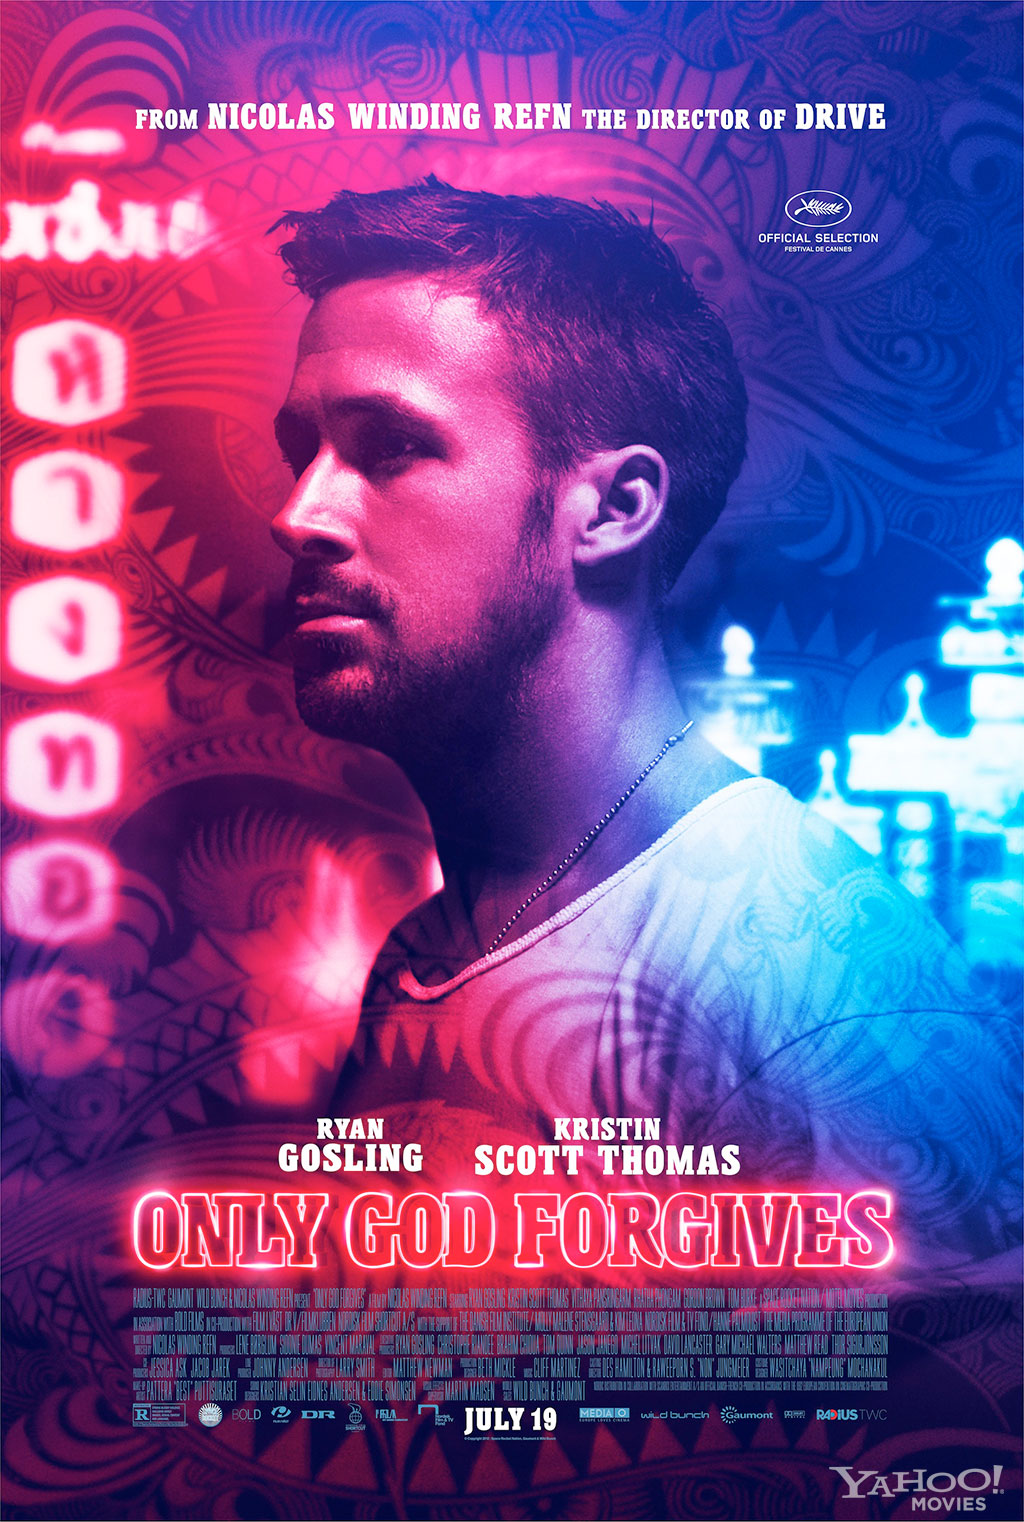 Only-God-Forgives-Character-Poster-Ryan-Gosling